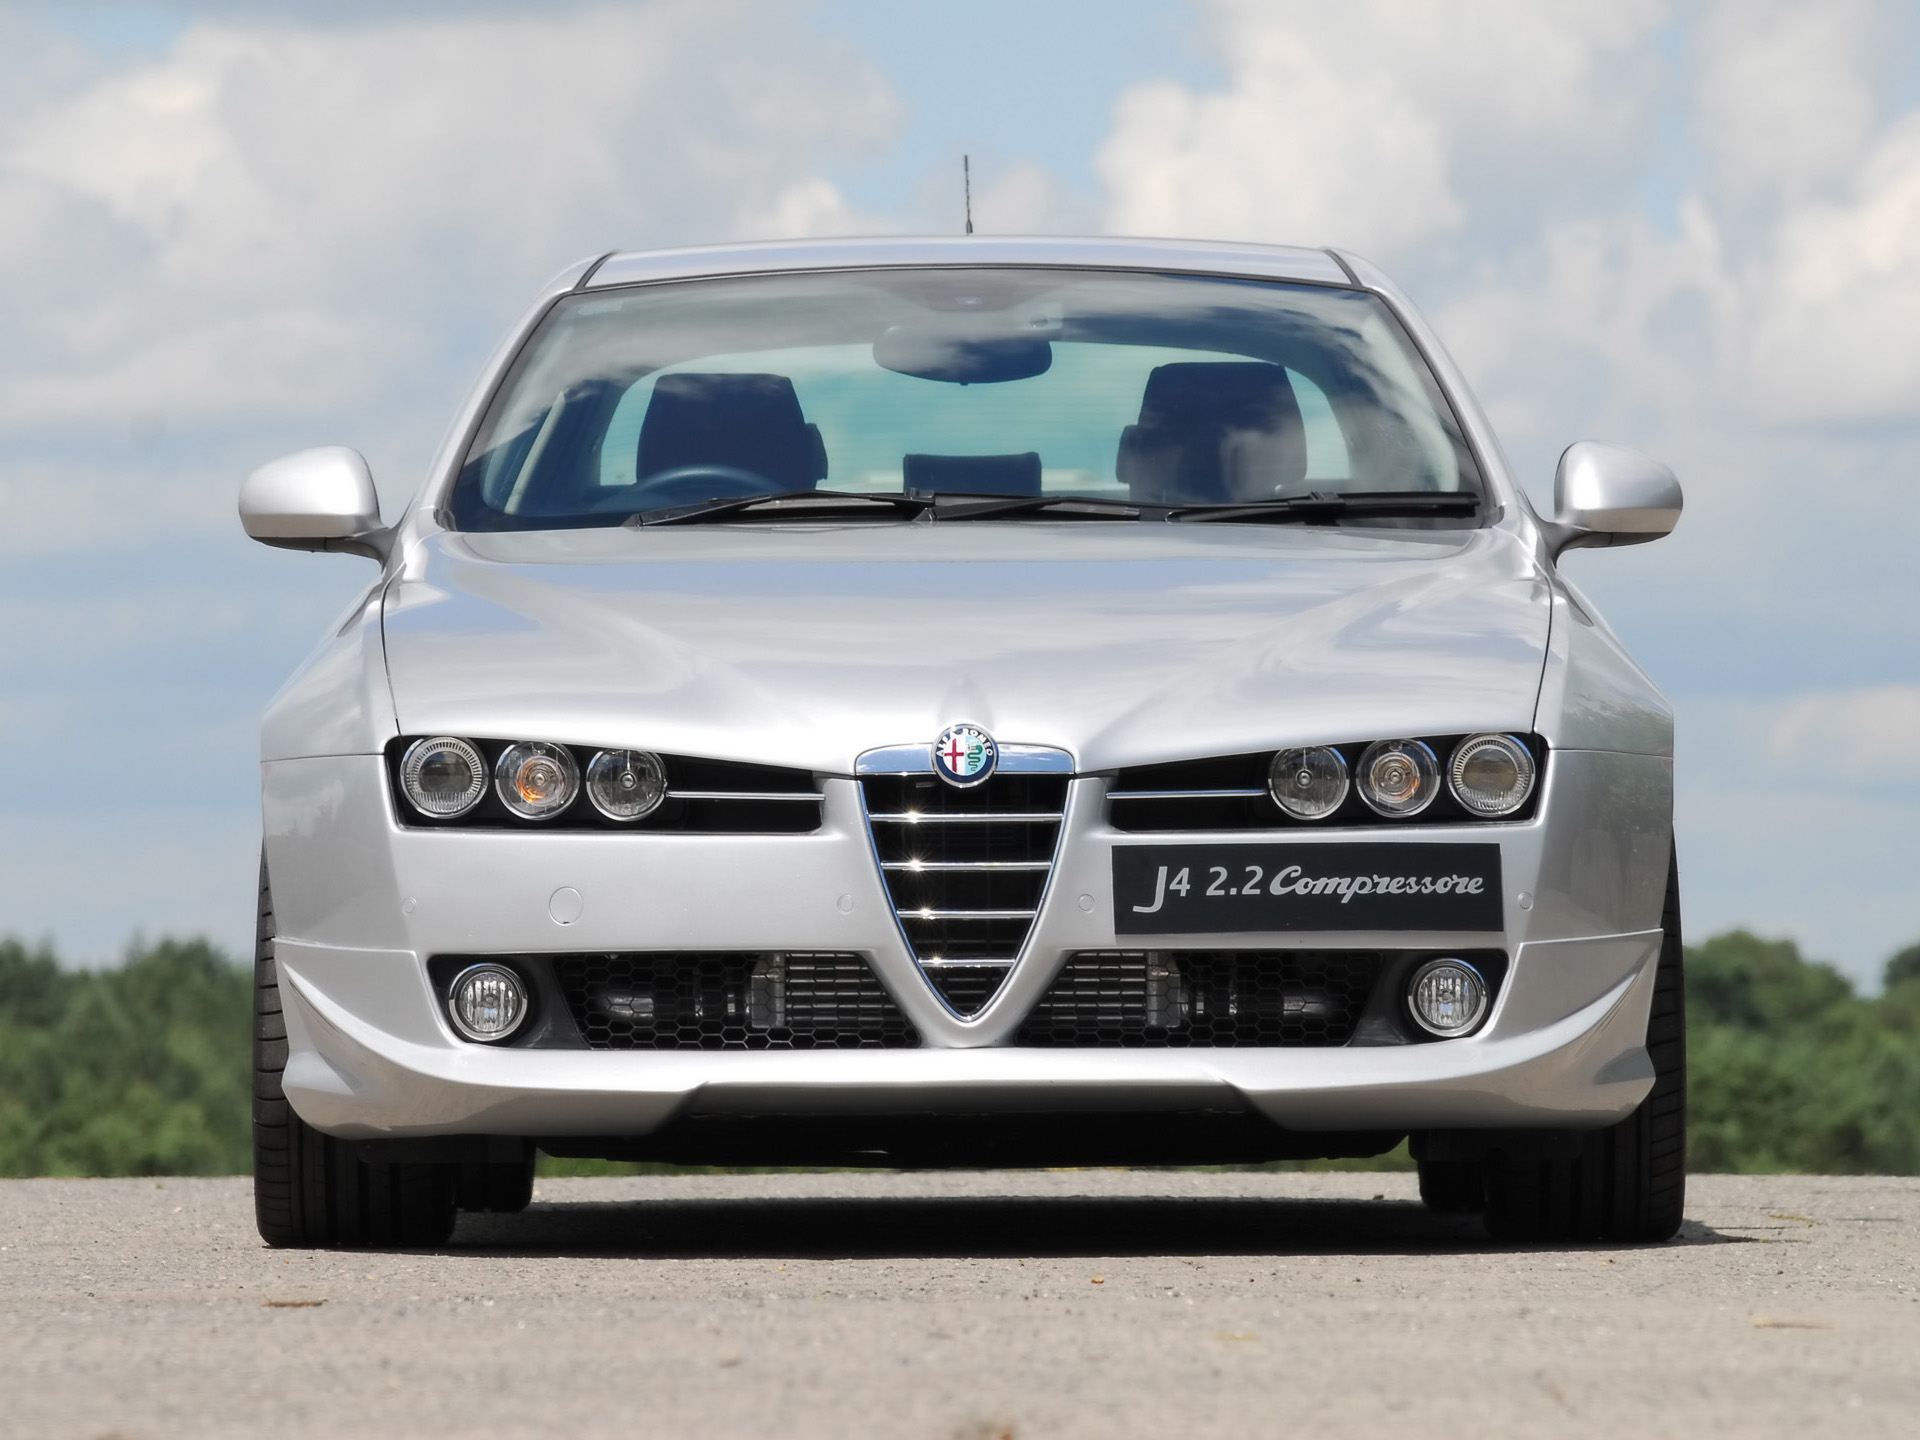 Autodelta Alfa Romeo 159 J4 2.2 C photo 56860